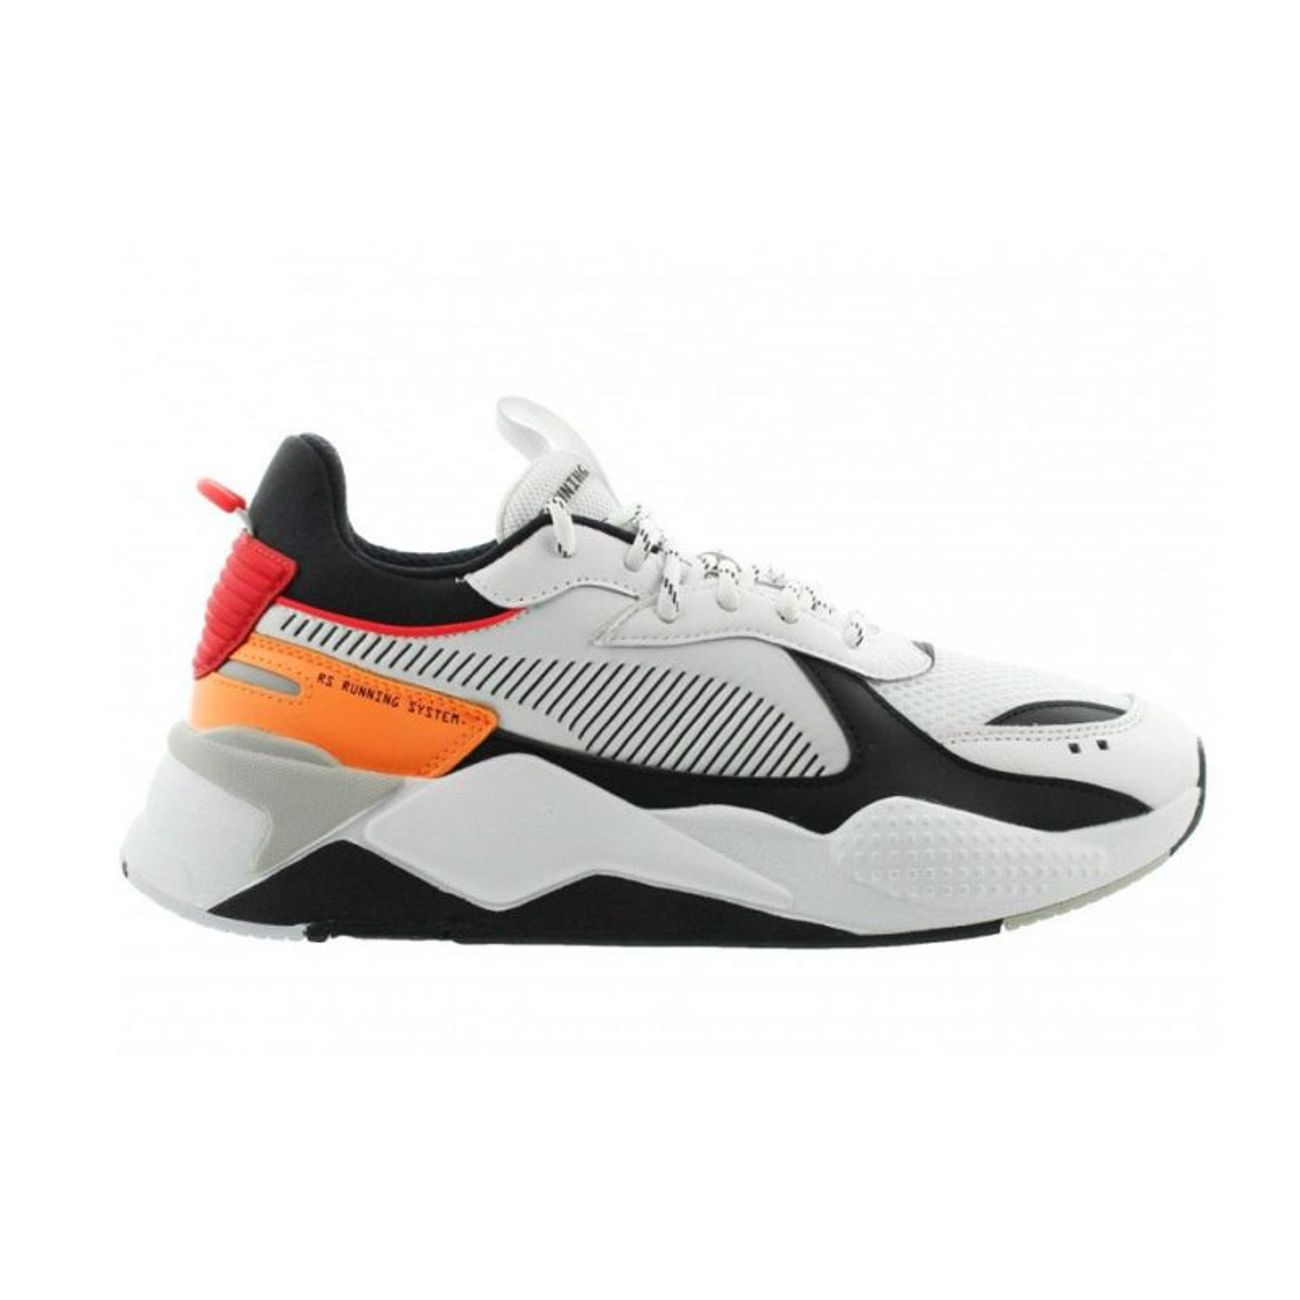 Puma Rs Tracks Blanc x Rouge Adulte 02 369332 Padel nXkO80Pw